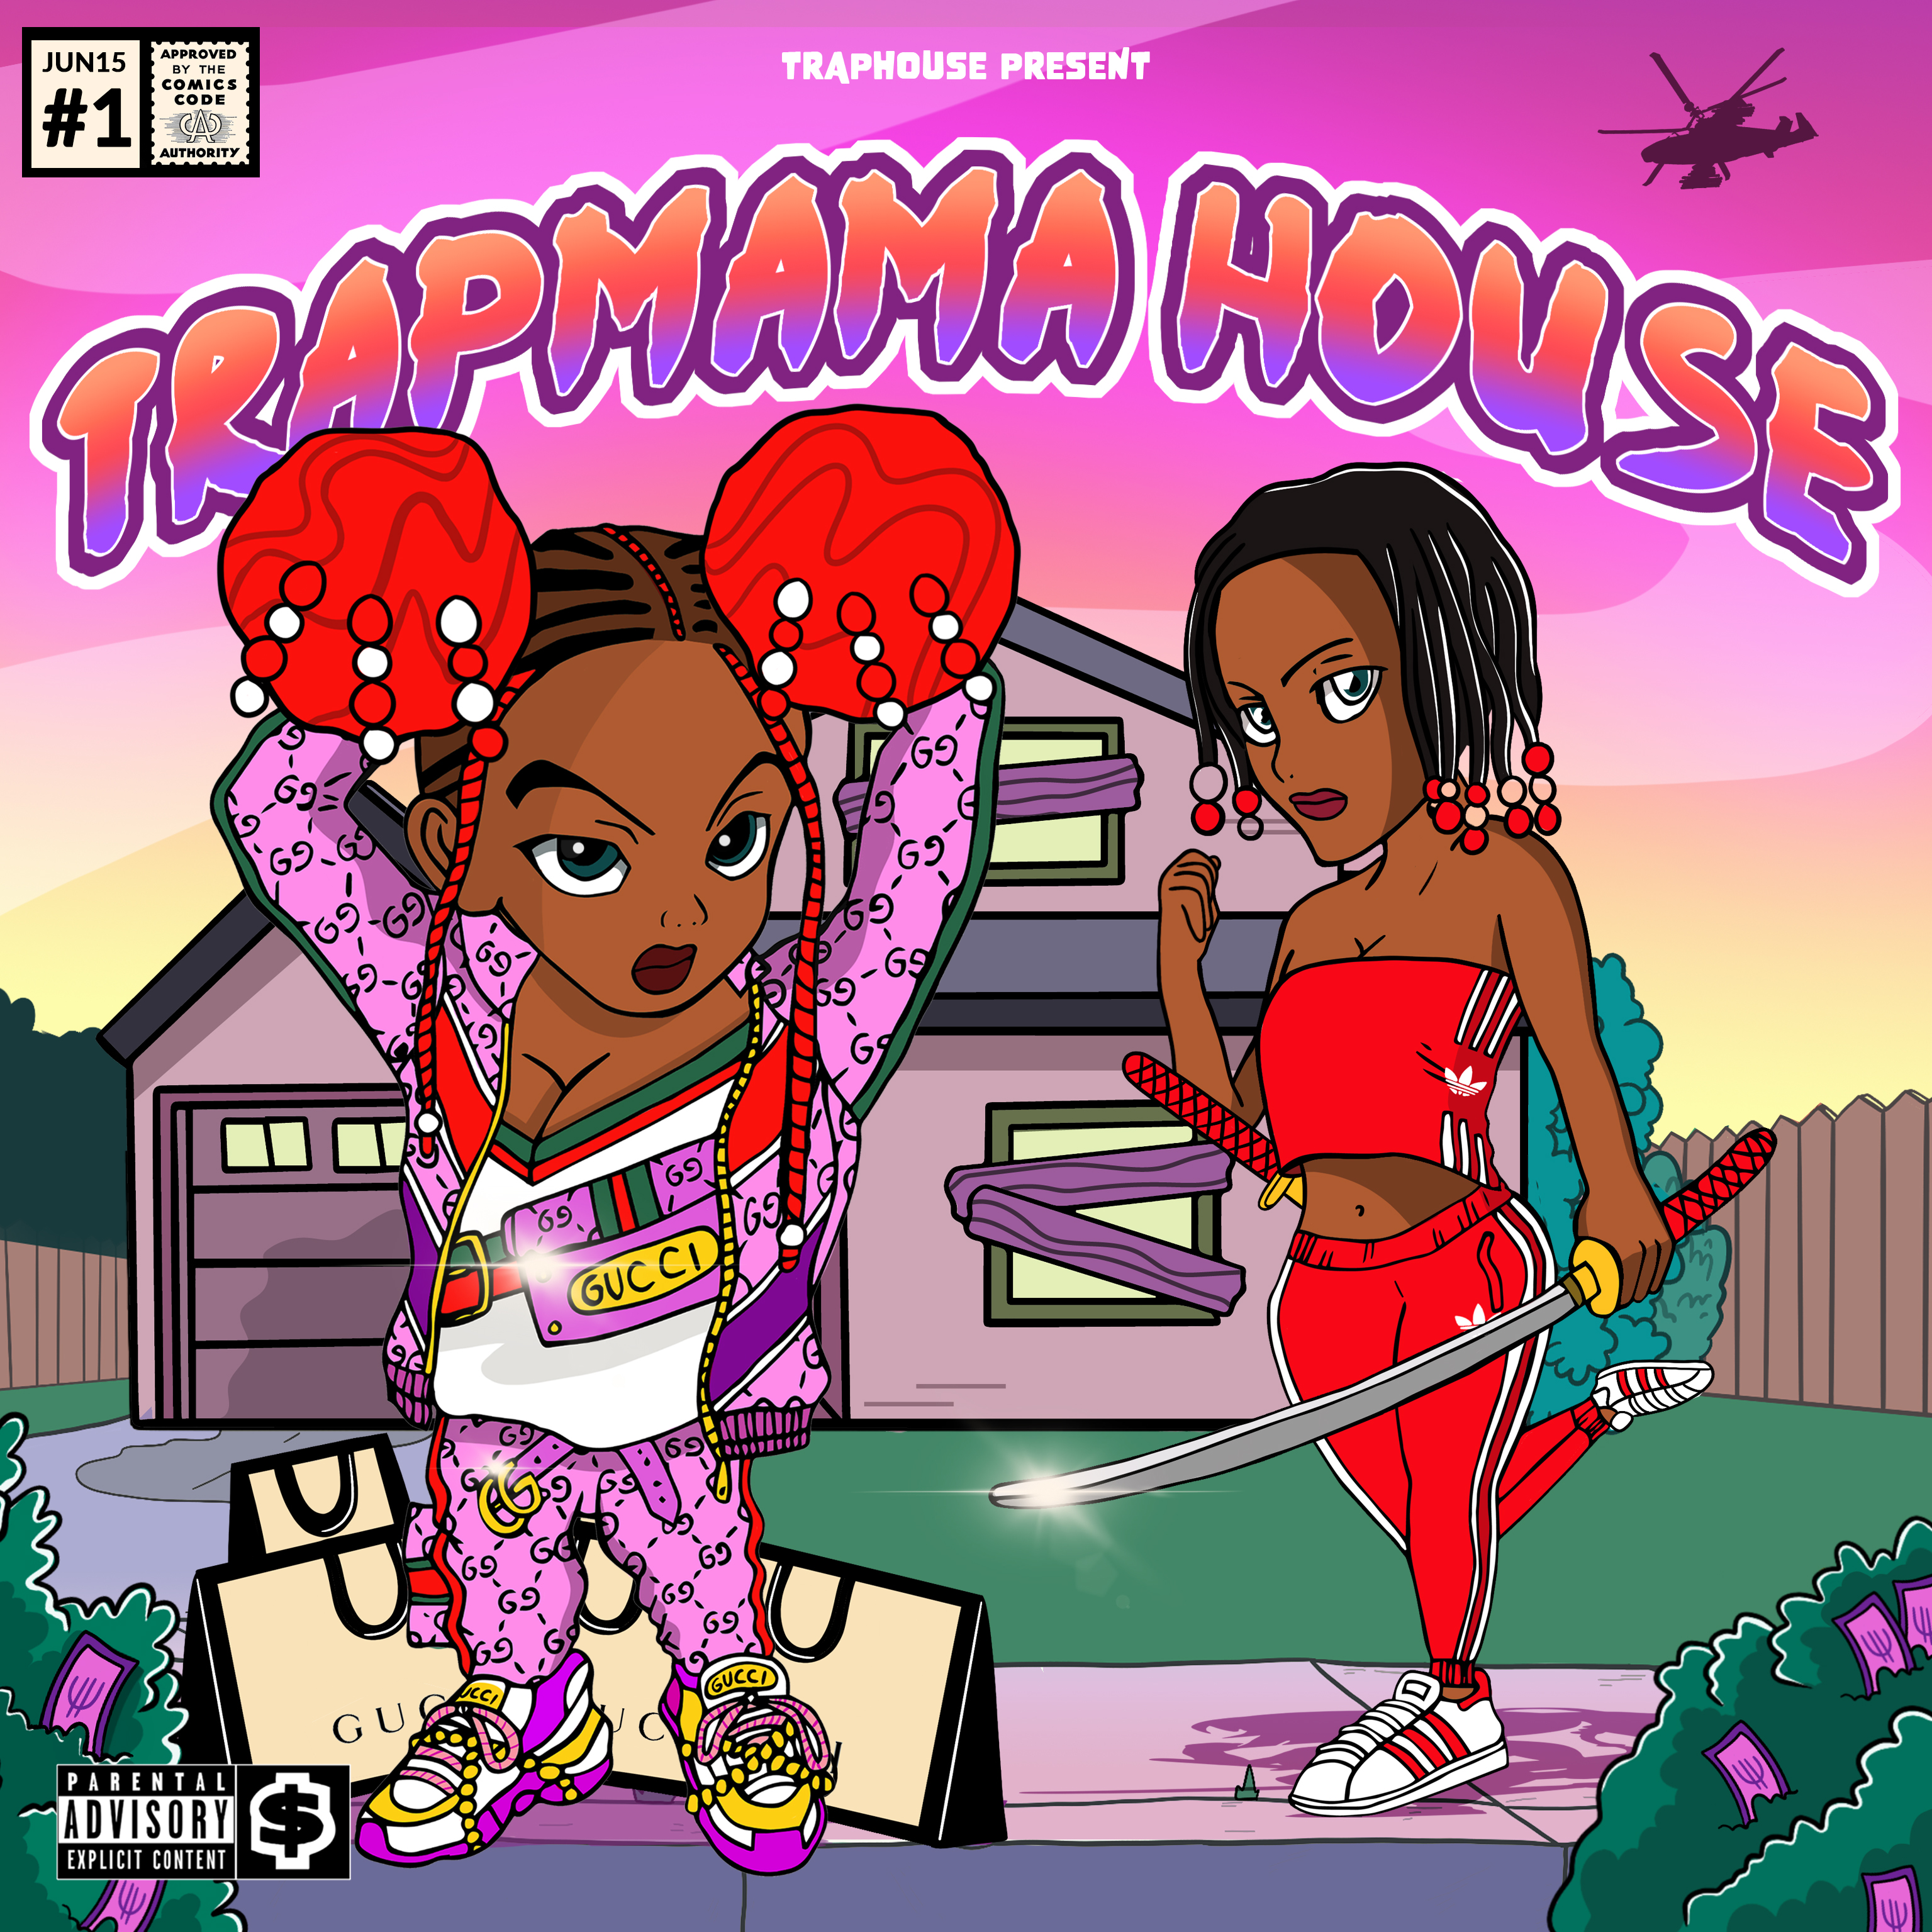 Traphouse cover